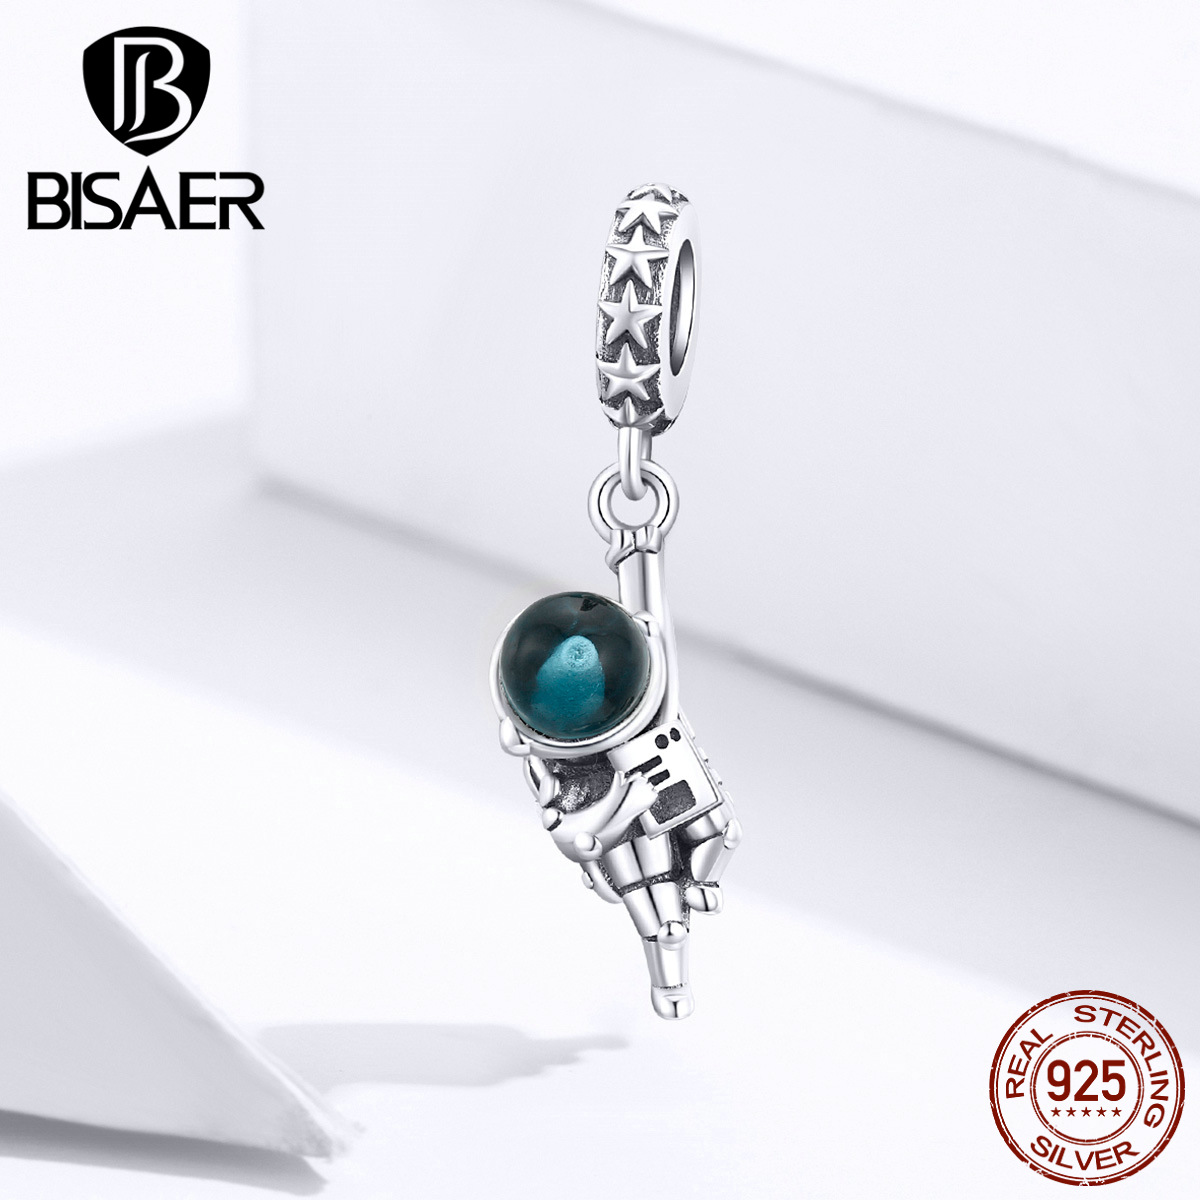 Astronaut Pendant BISAER Real 925 Sterling Silver Aviation Astronaut Dream Beads Charms For Original Silver 925 Jewelry EFC202